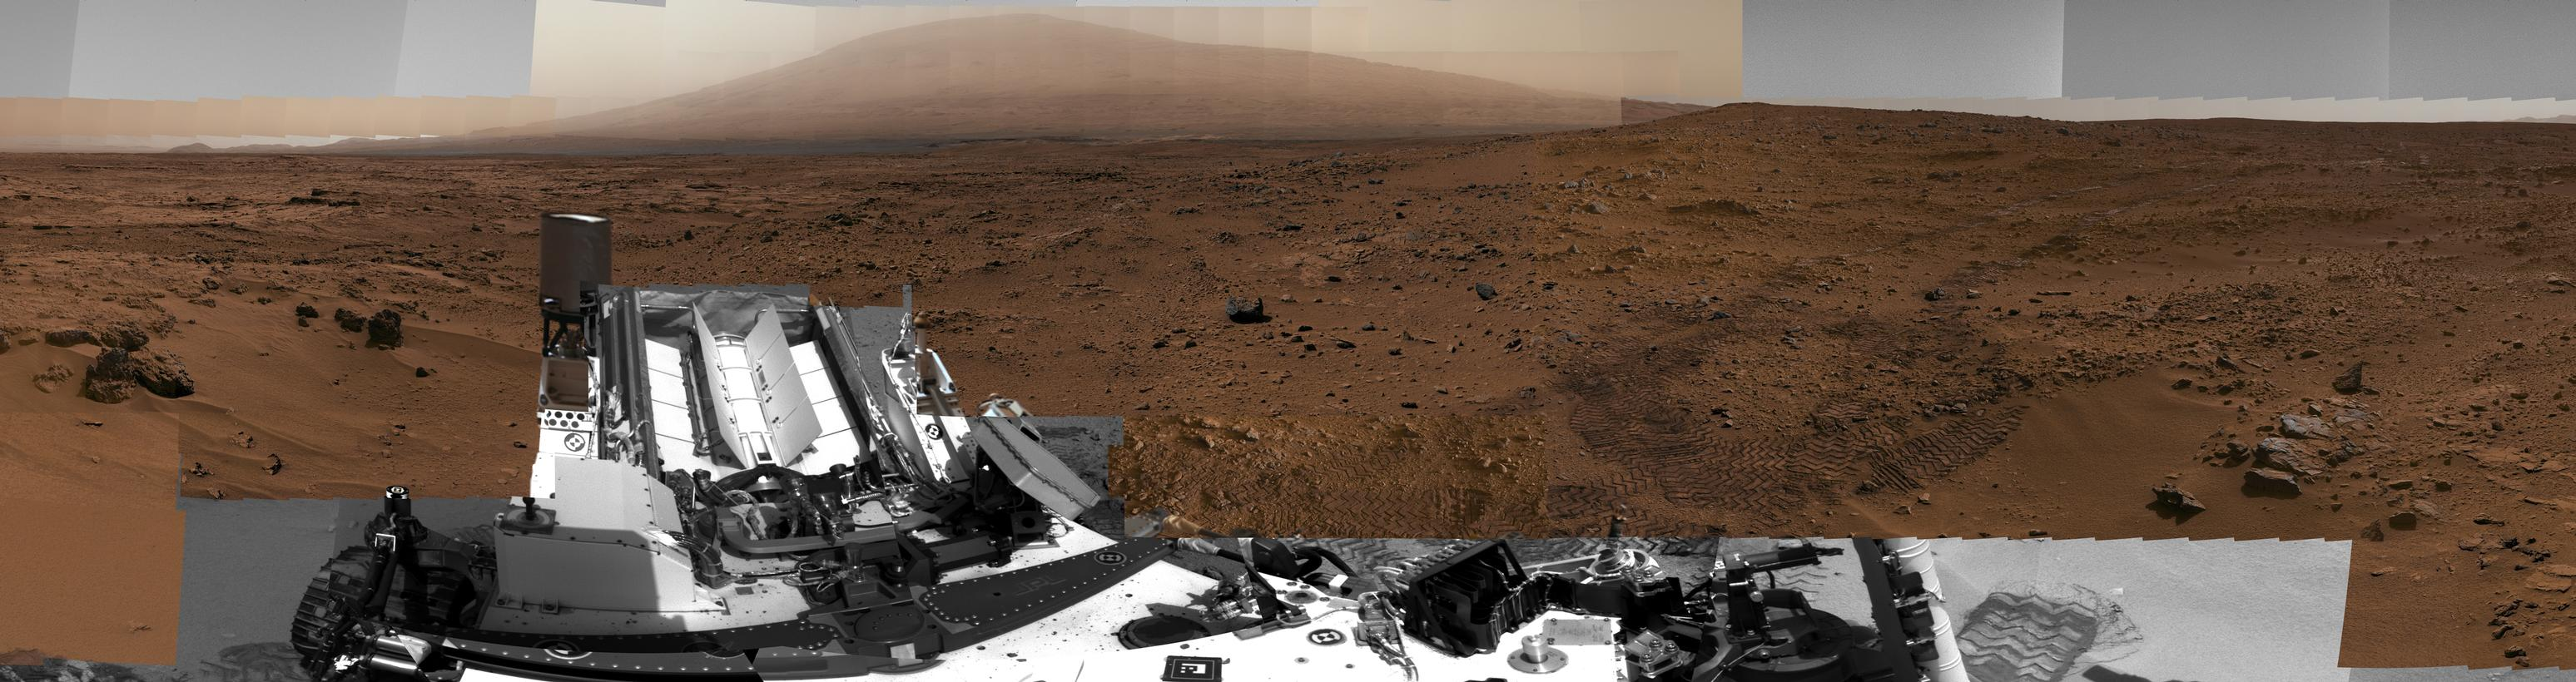 This full-circle view combined nearly 900 images taken by NASA's Curiosity Mars rover, generating a panorama with 1.3 billion pixels in the full-resolution version.